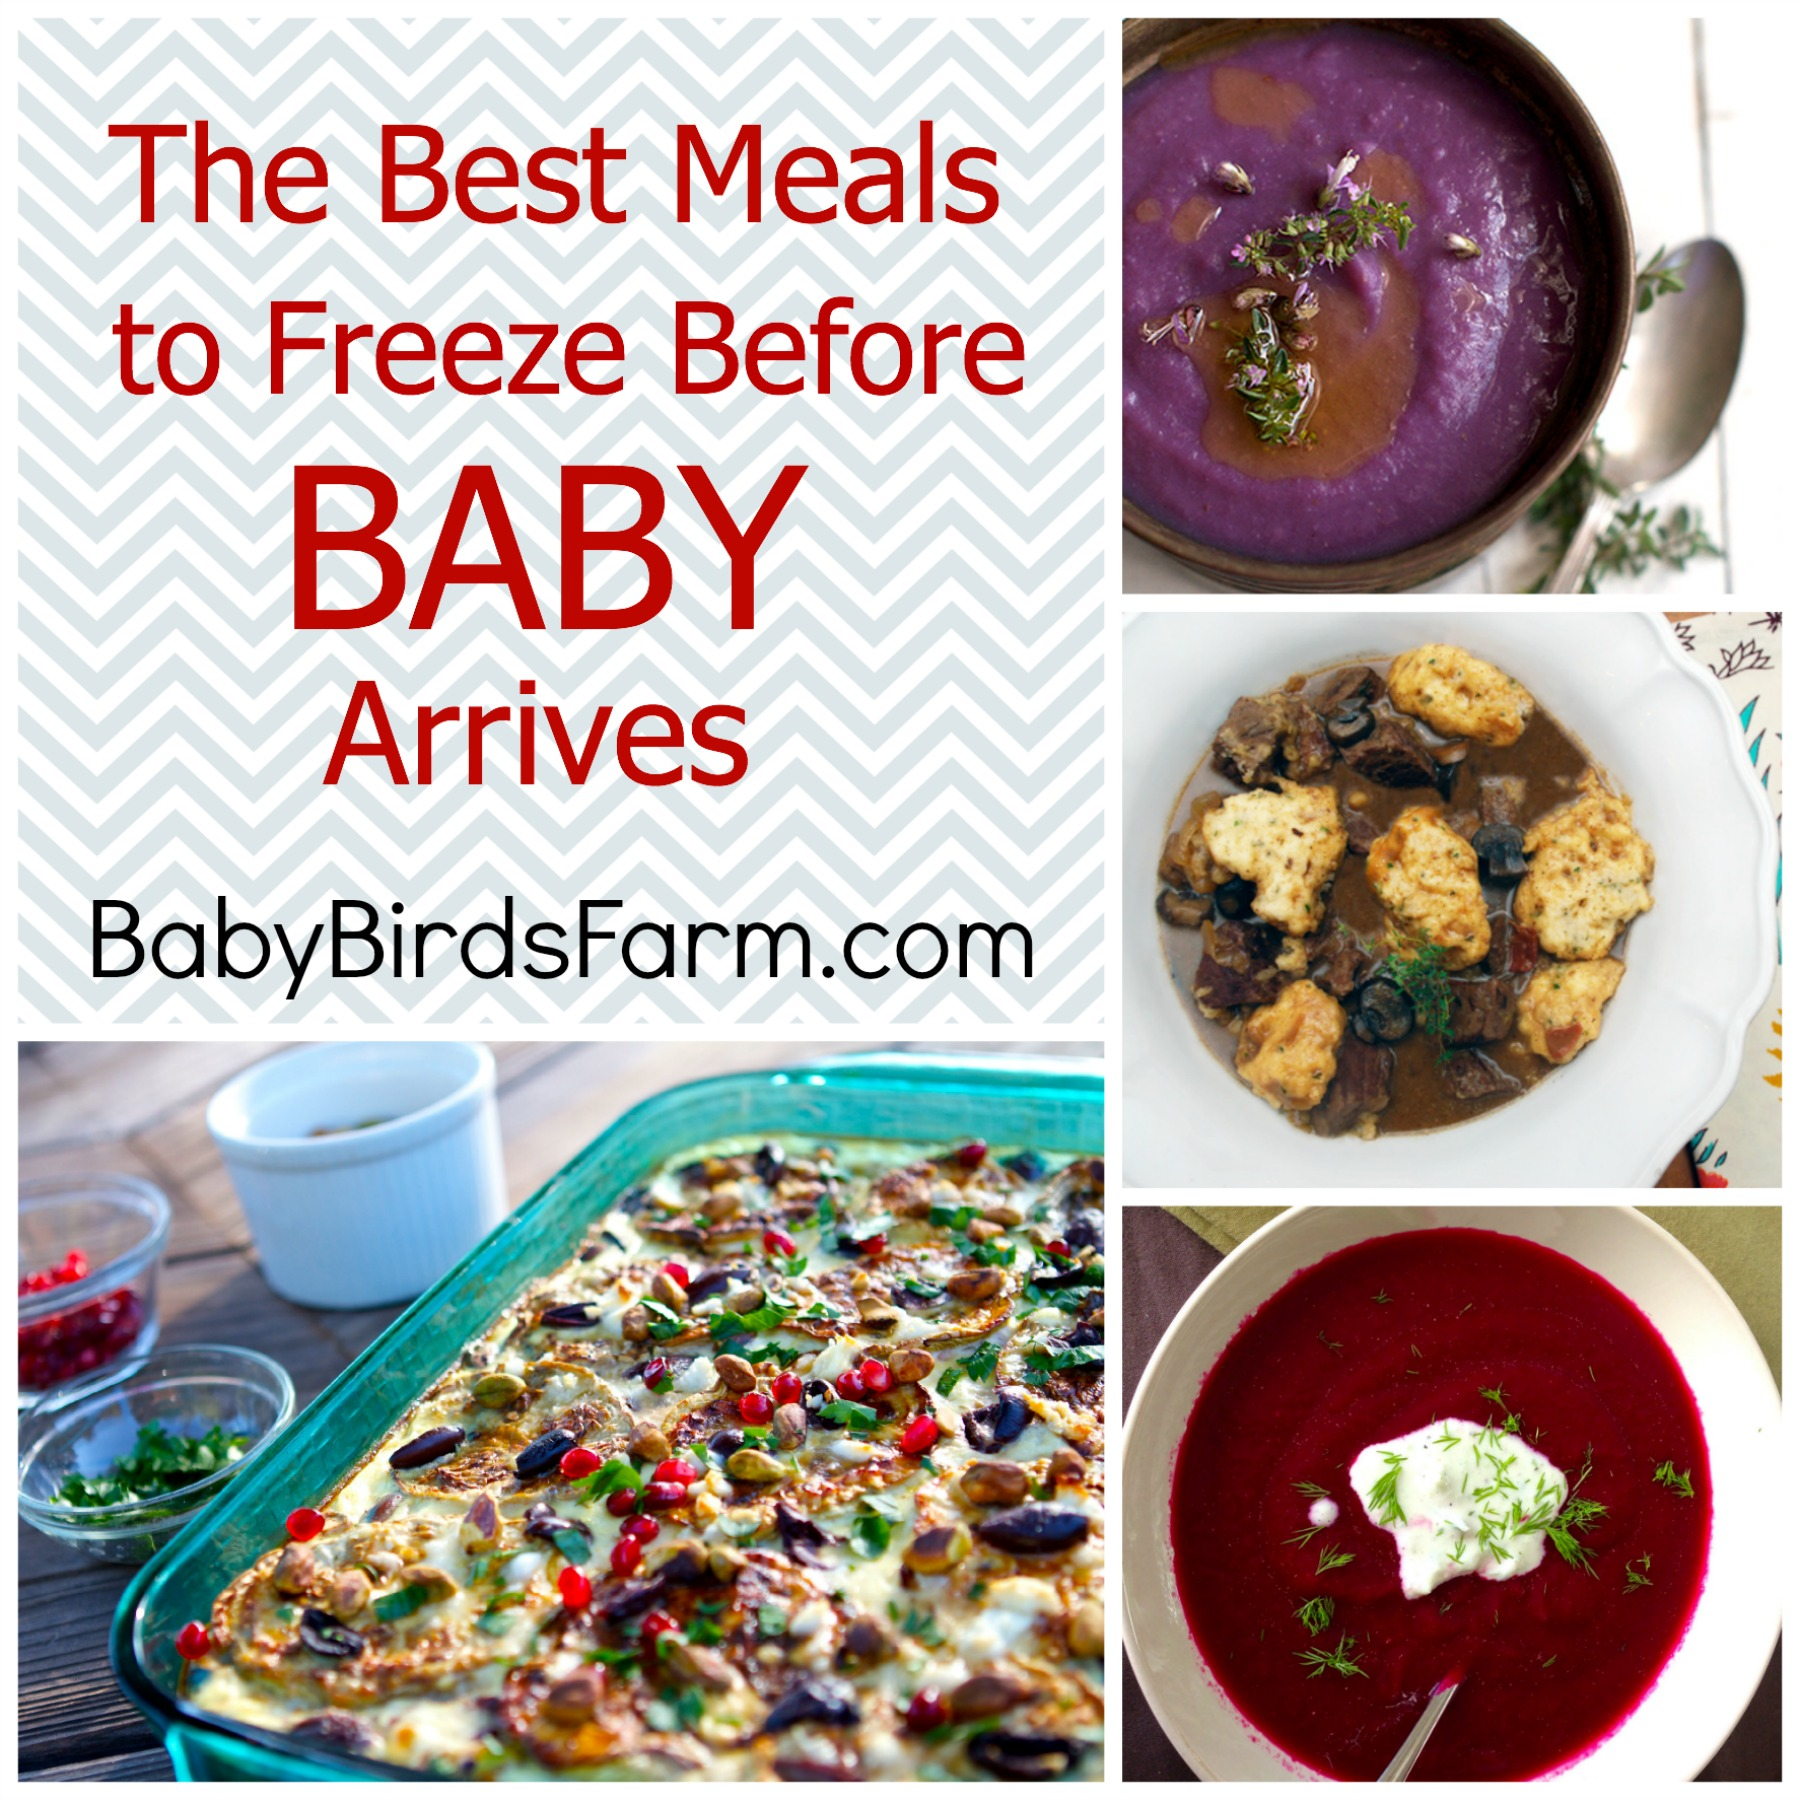 Healthy meals to freeze before baby arrives